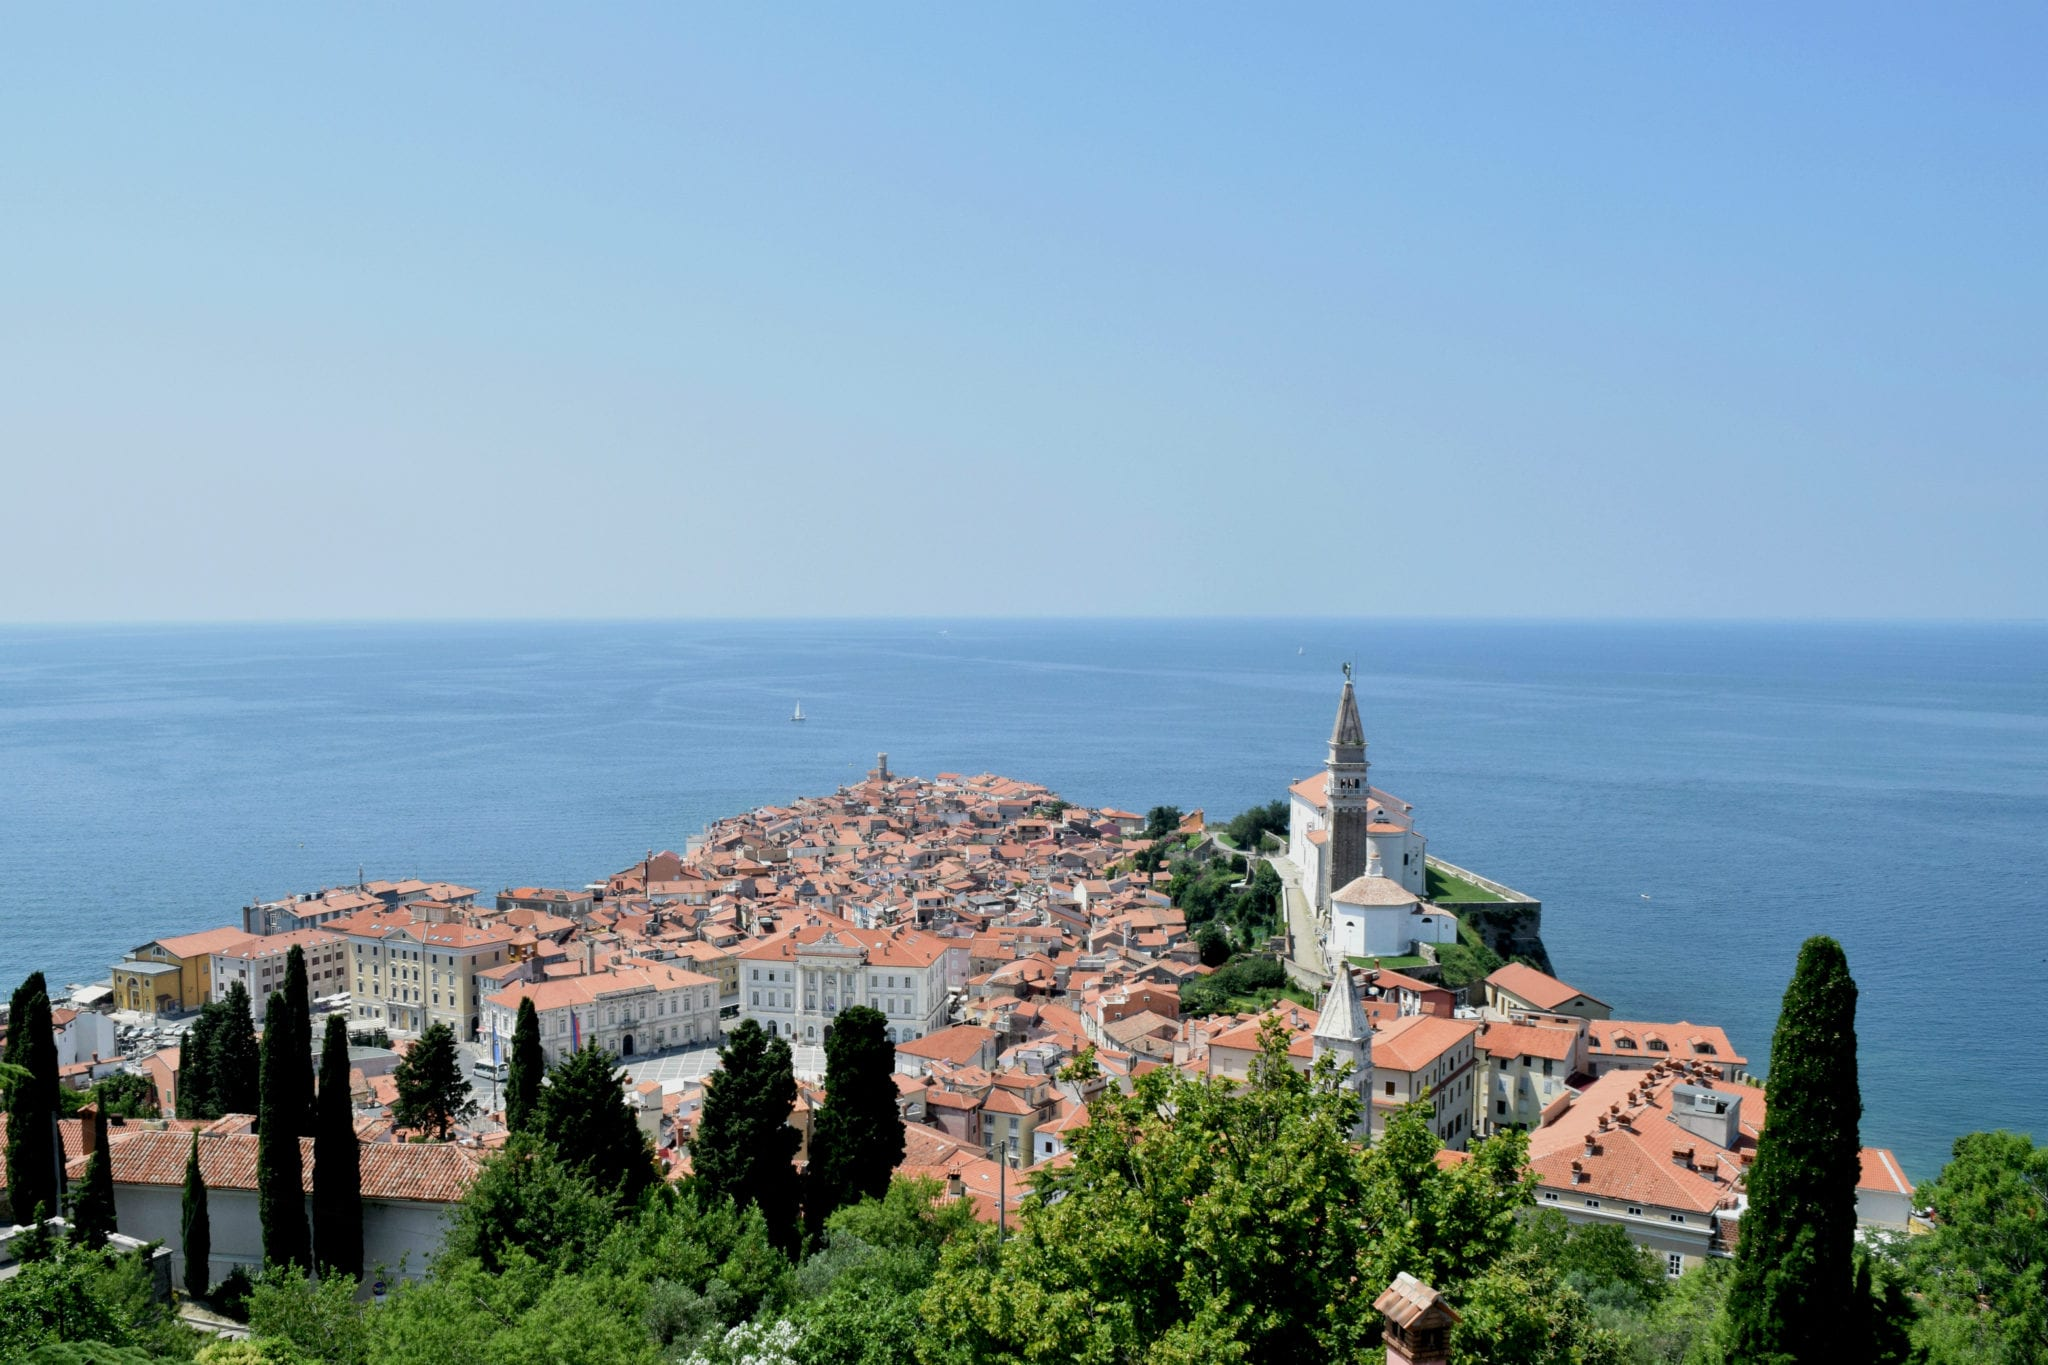 View of Piran Slovenia fro the town walls--don't miss this climb when visiting Piran!